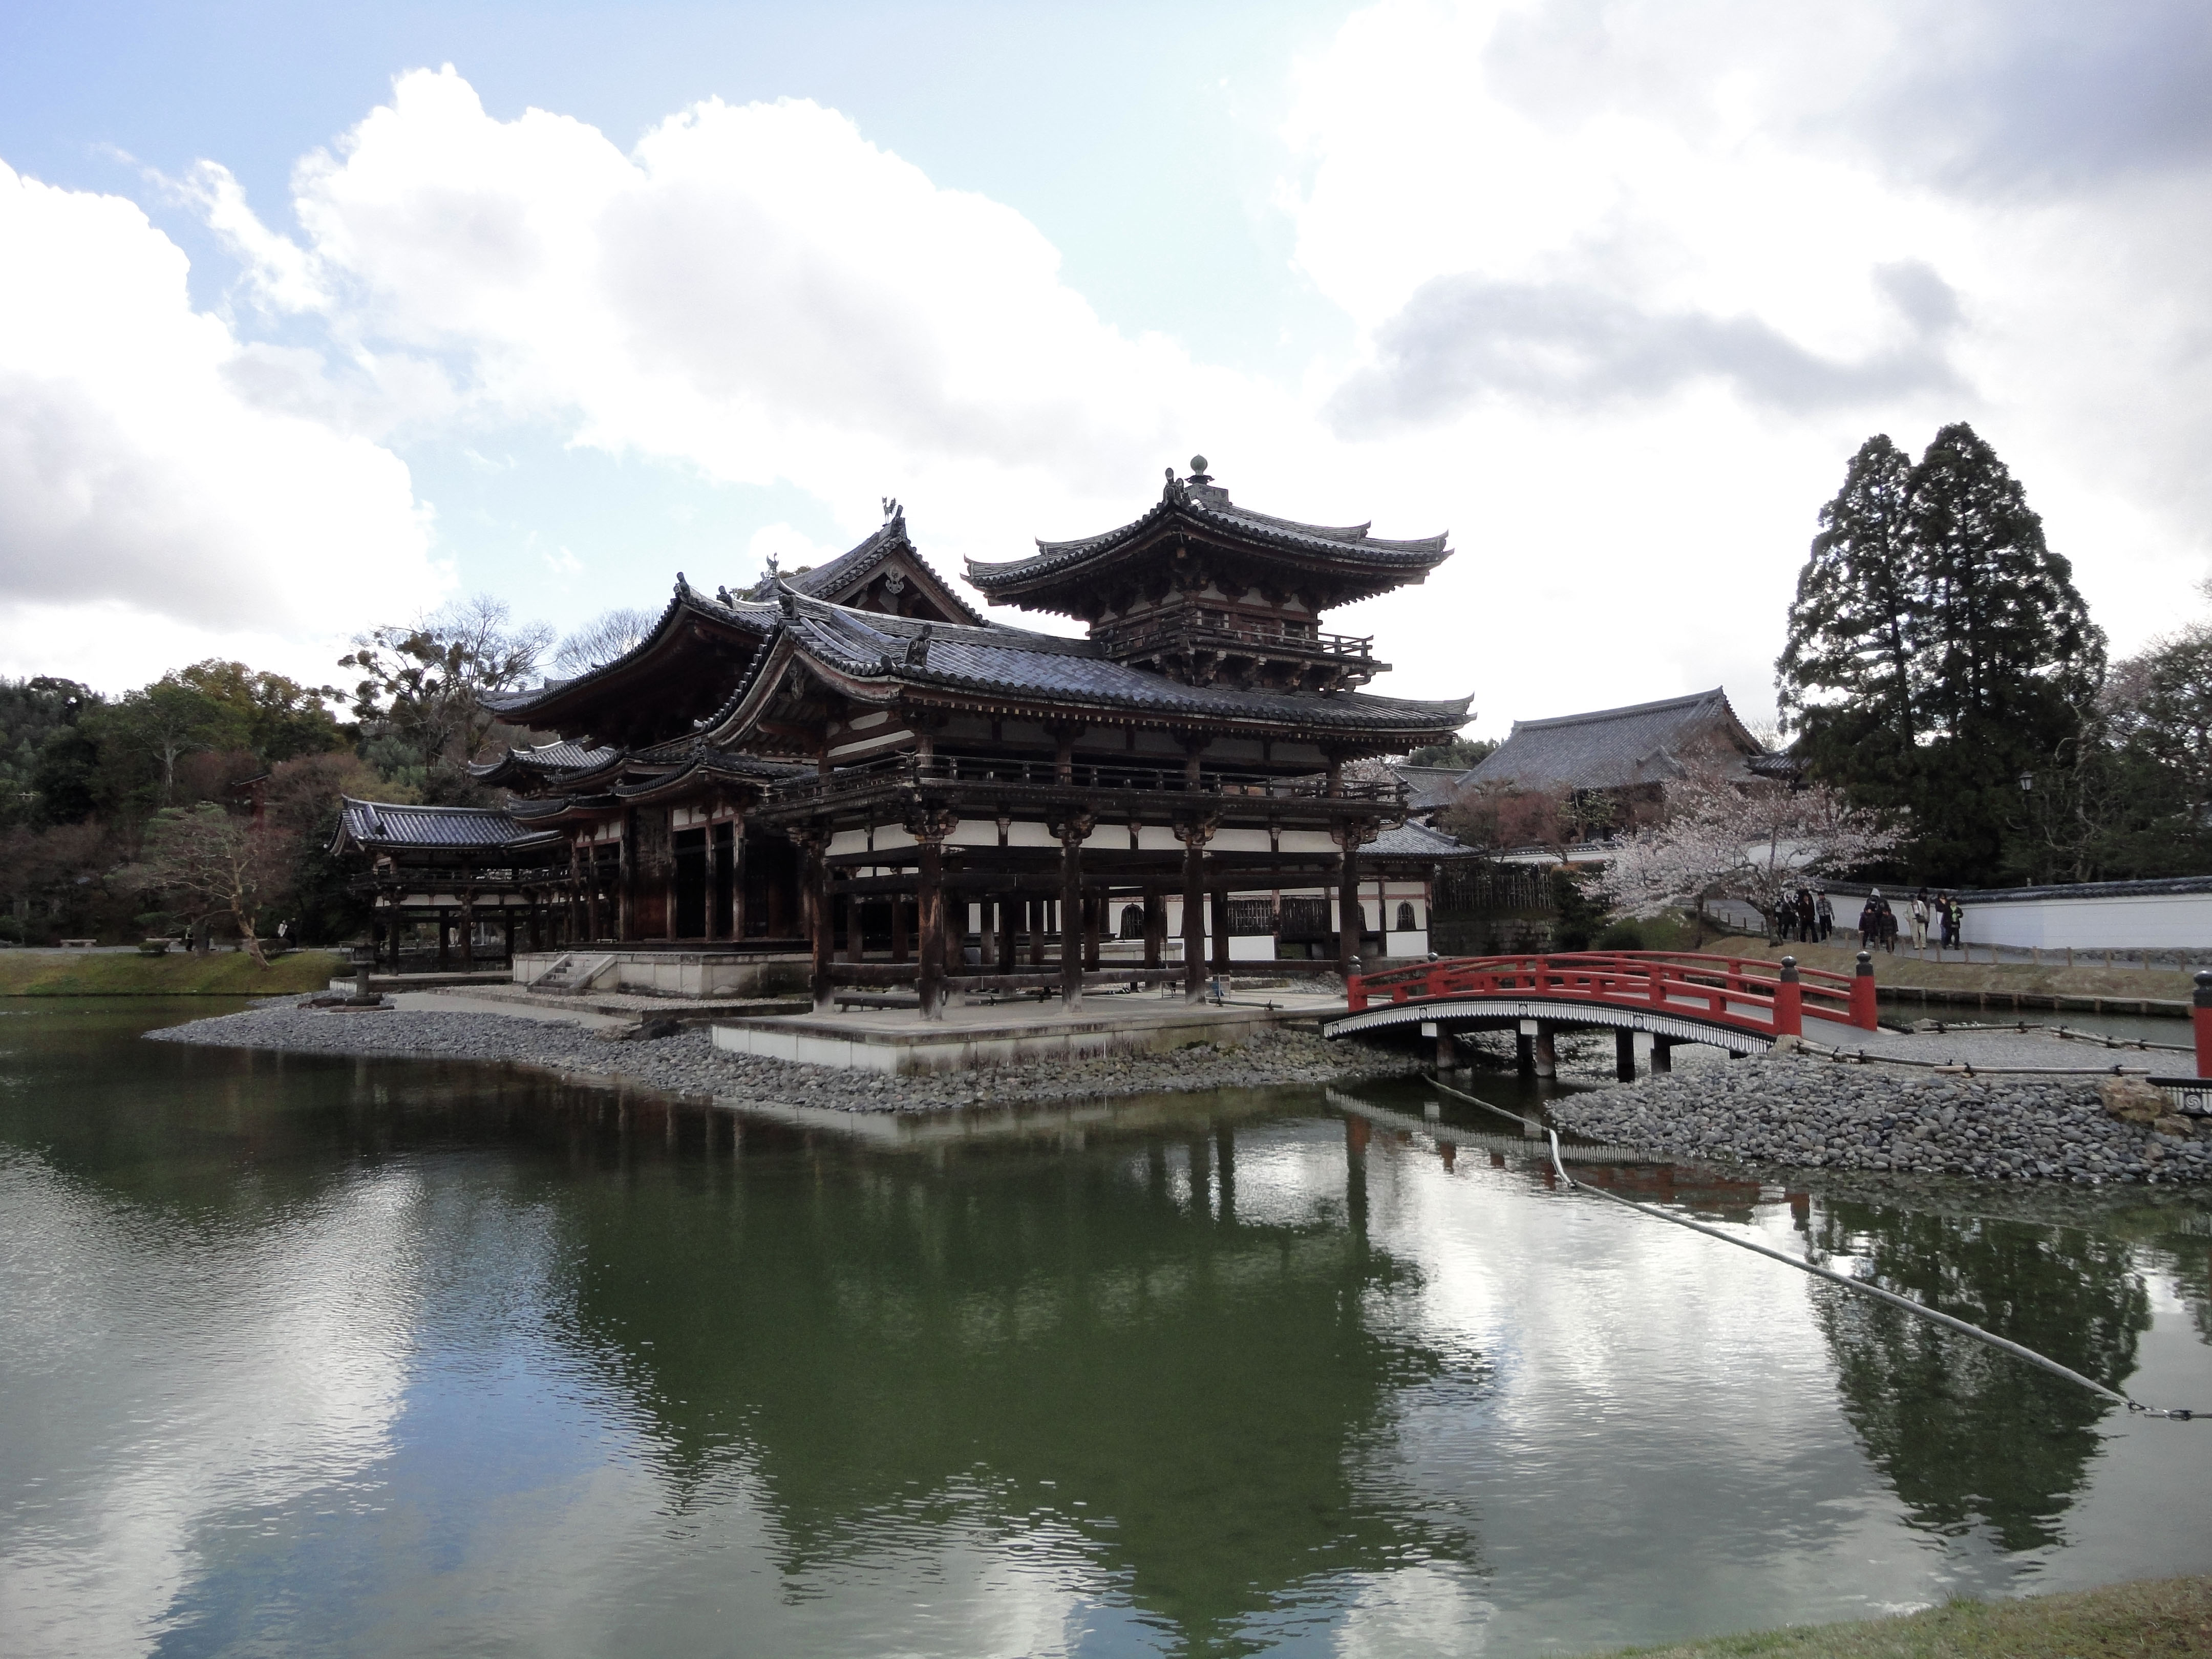 Byodo in temple Phoenix Hall and Jodo shiki garden Kyoto Japan 02